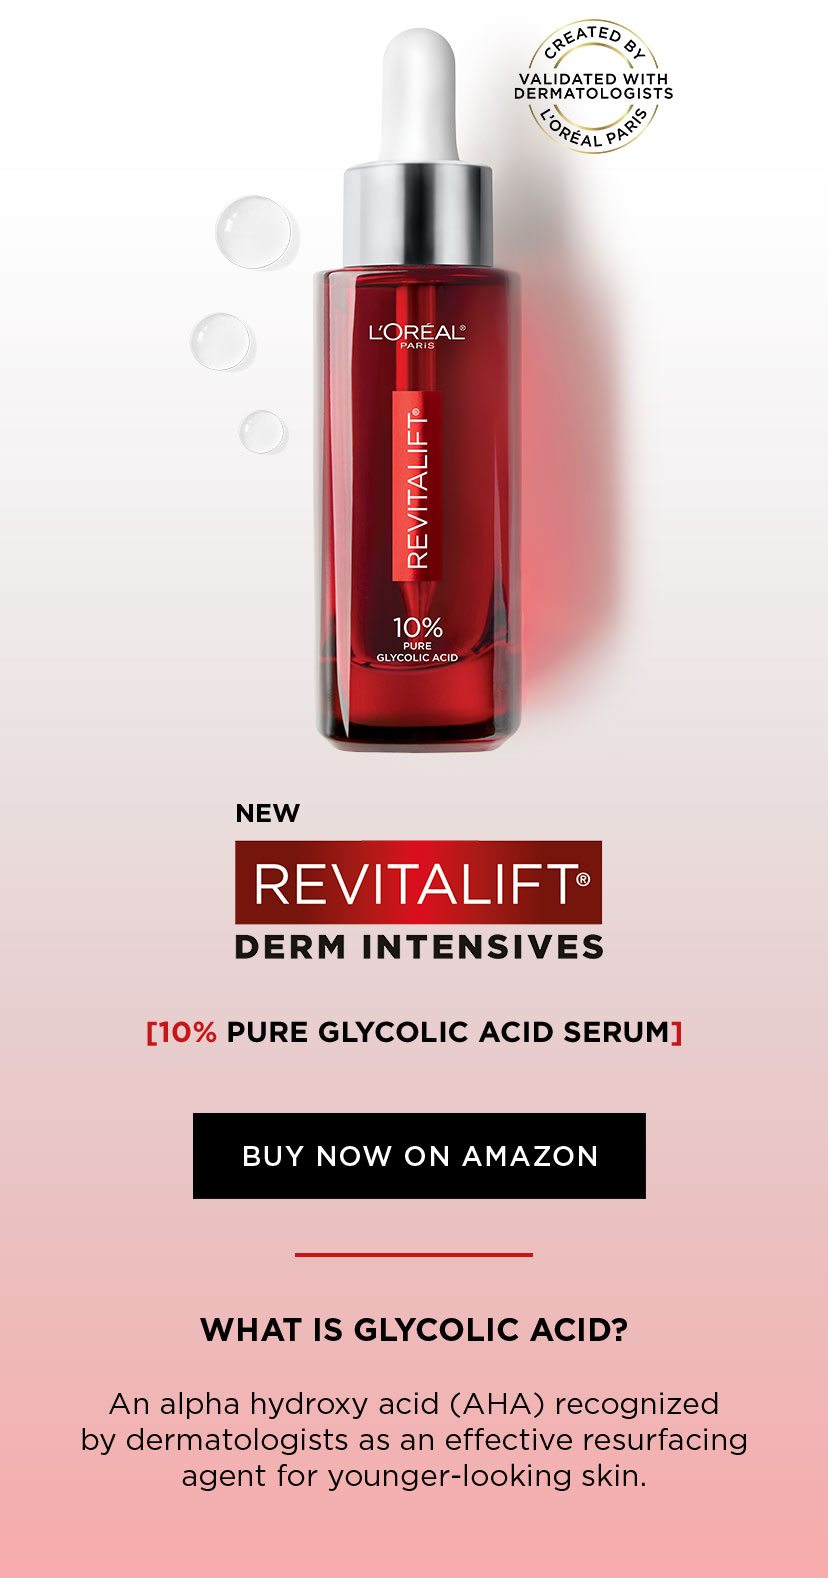 NEW - REVITALIFT® DERM INTESIVES - 10 PERCENT PURE GLYCOLIC ACID SERUM - BUY NOW ON AMAZON - CREATED BY L'ORÉAL PARIS - VALIDATED WITH DERMATOLOGISTS - WHAT IS GLYCOLIC ACID? - An alpha hydroxy acid (AHA) recognized by dermatologists as an effective resurfacing agent for younger-looking skin.